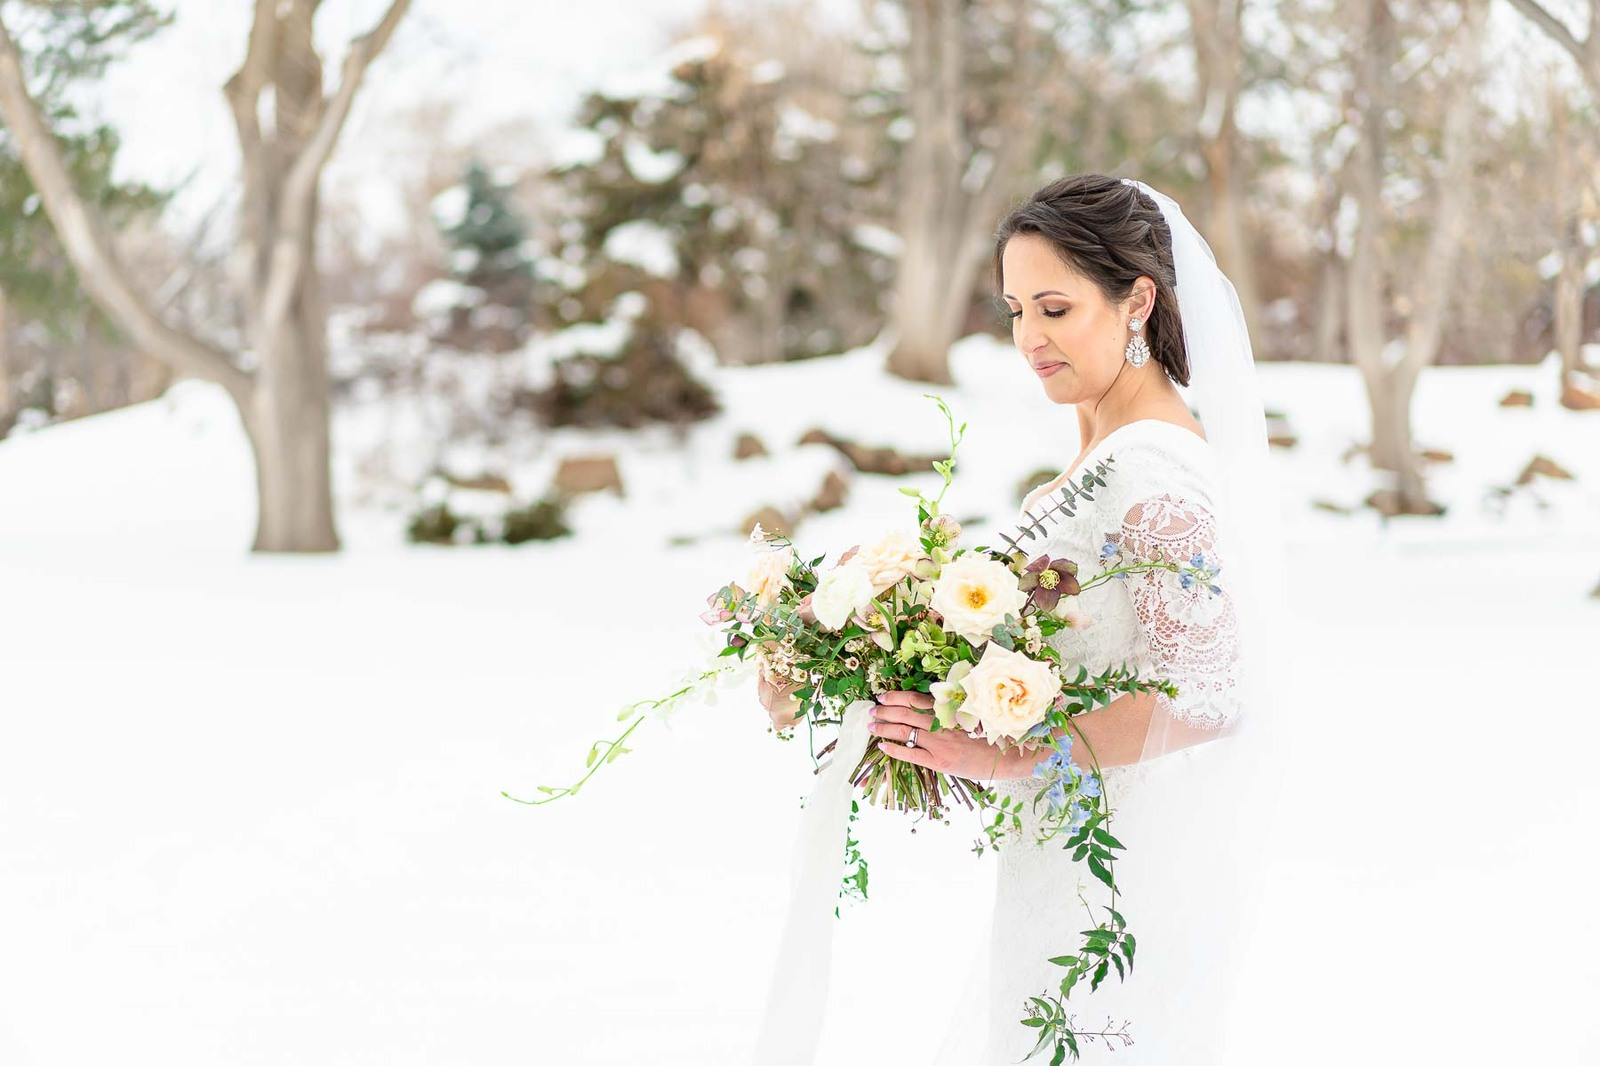 bride looking down at bouquet with white roses and vines in the snow